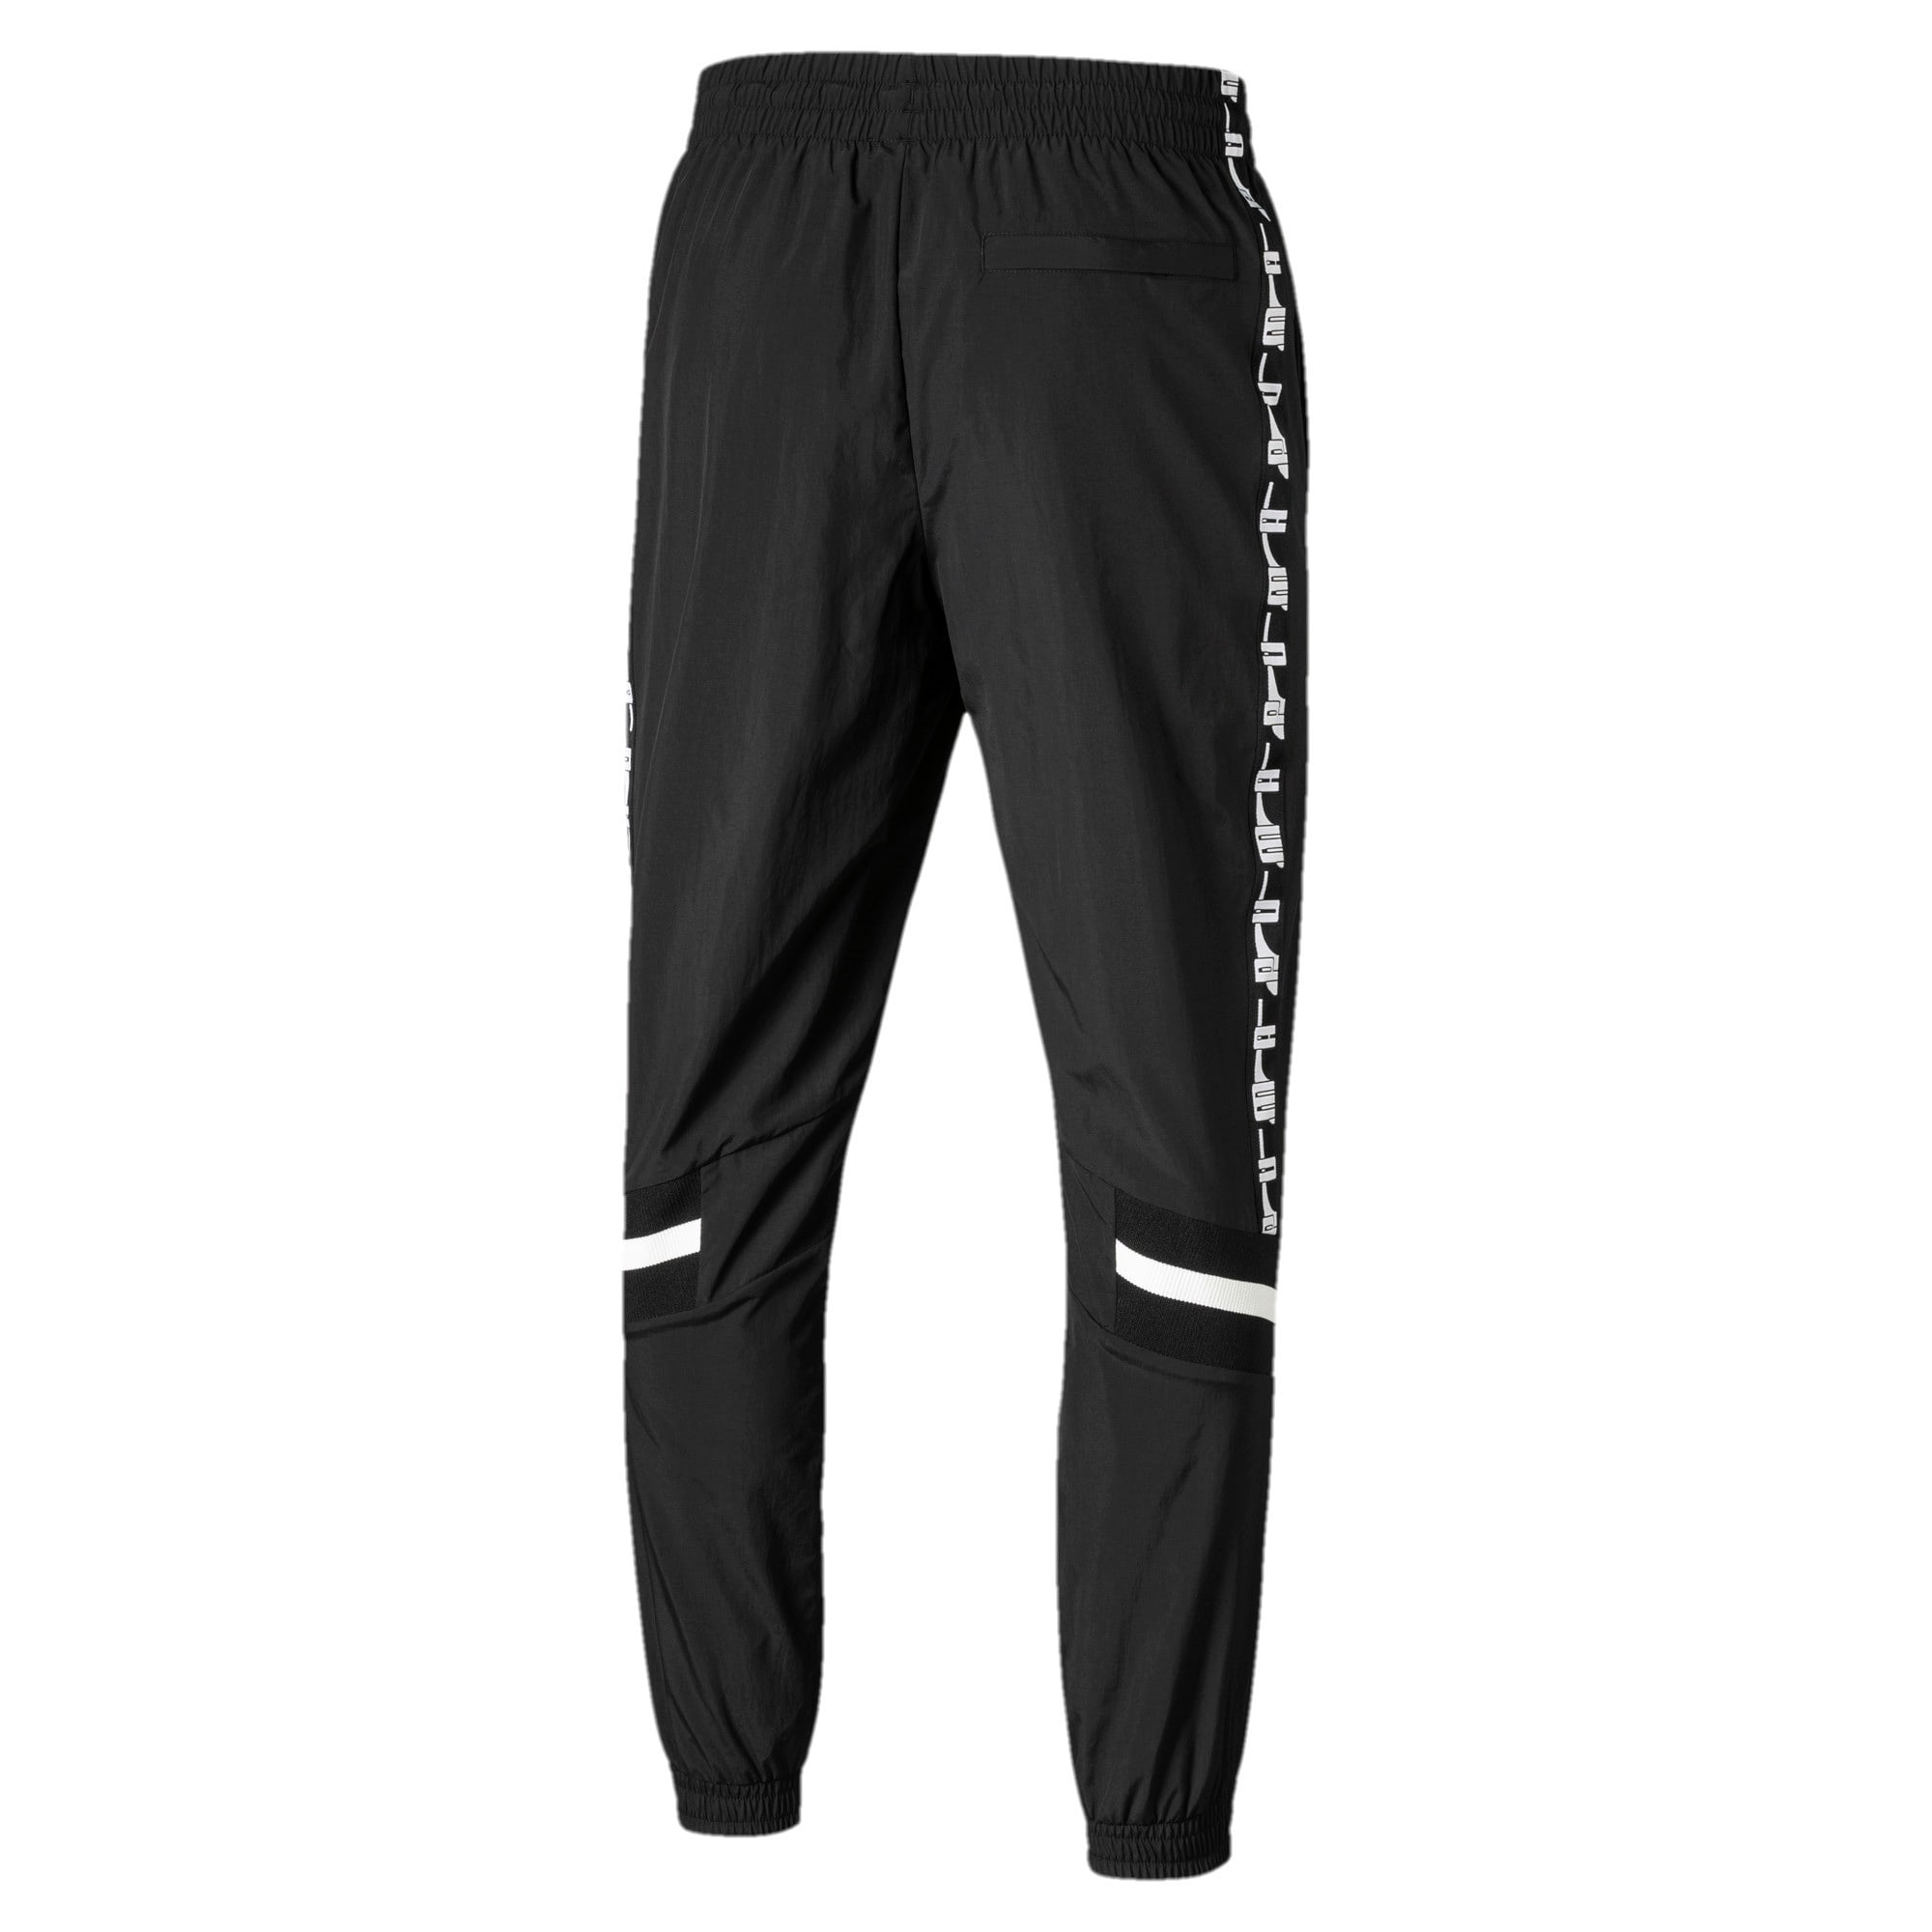 Thumbnail 5 of PUMA XTG Woven Men's Pants, Puma Black, medium